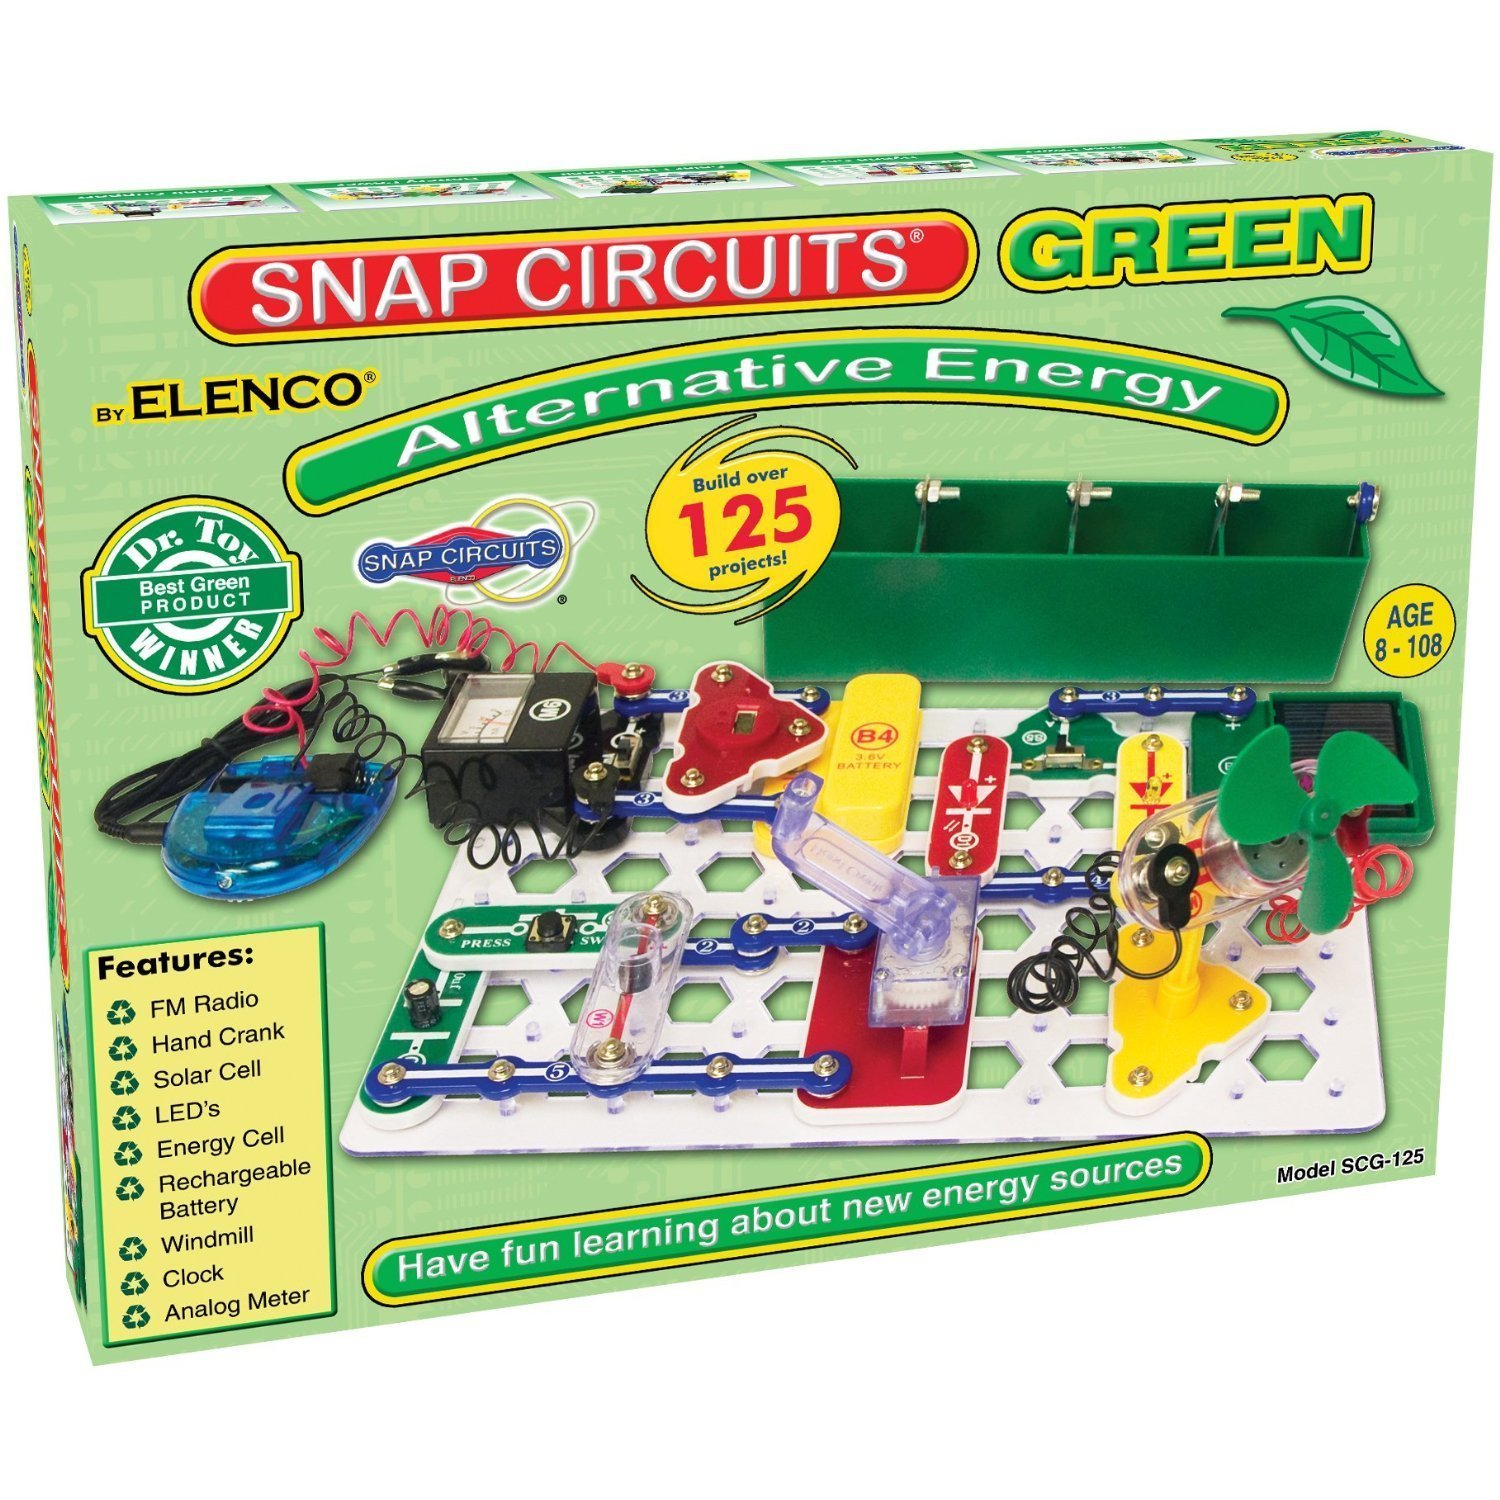 Snap Circuits Alternative Energy Green Electronics Exploration in Alternative Energy Kit | Over 125 STEM Projects | 4-Color Project Manual | 40+ Snap Modules | Unlimited Fun by Snap Circuits